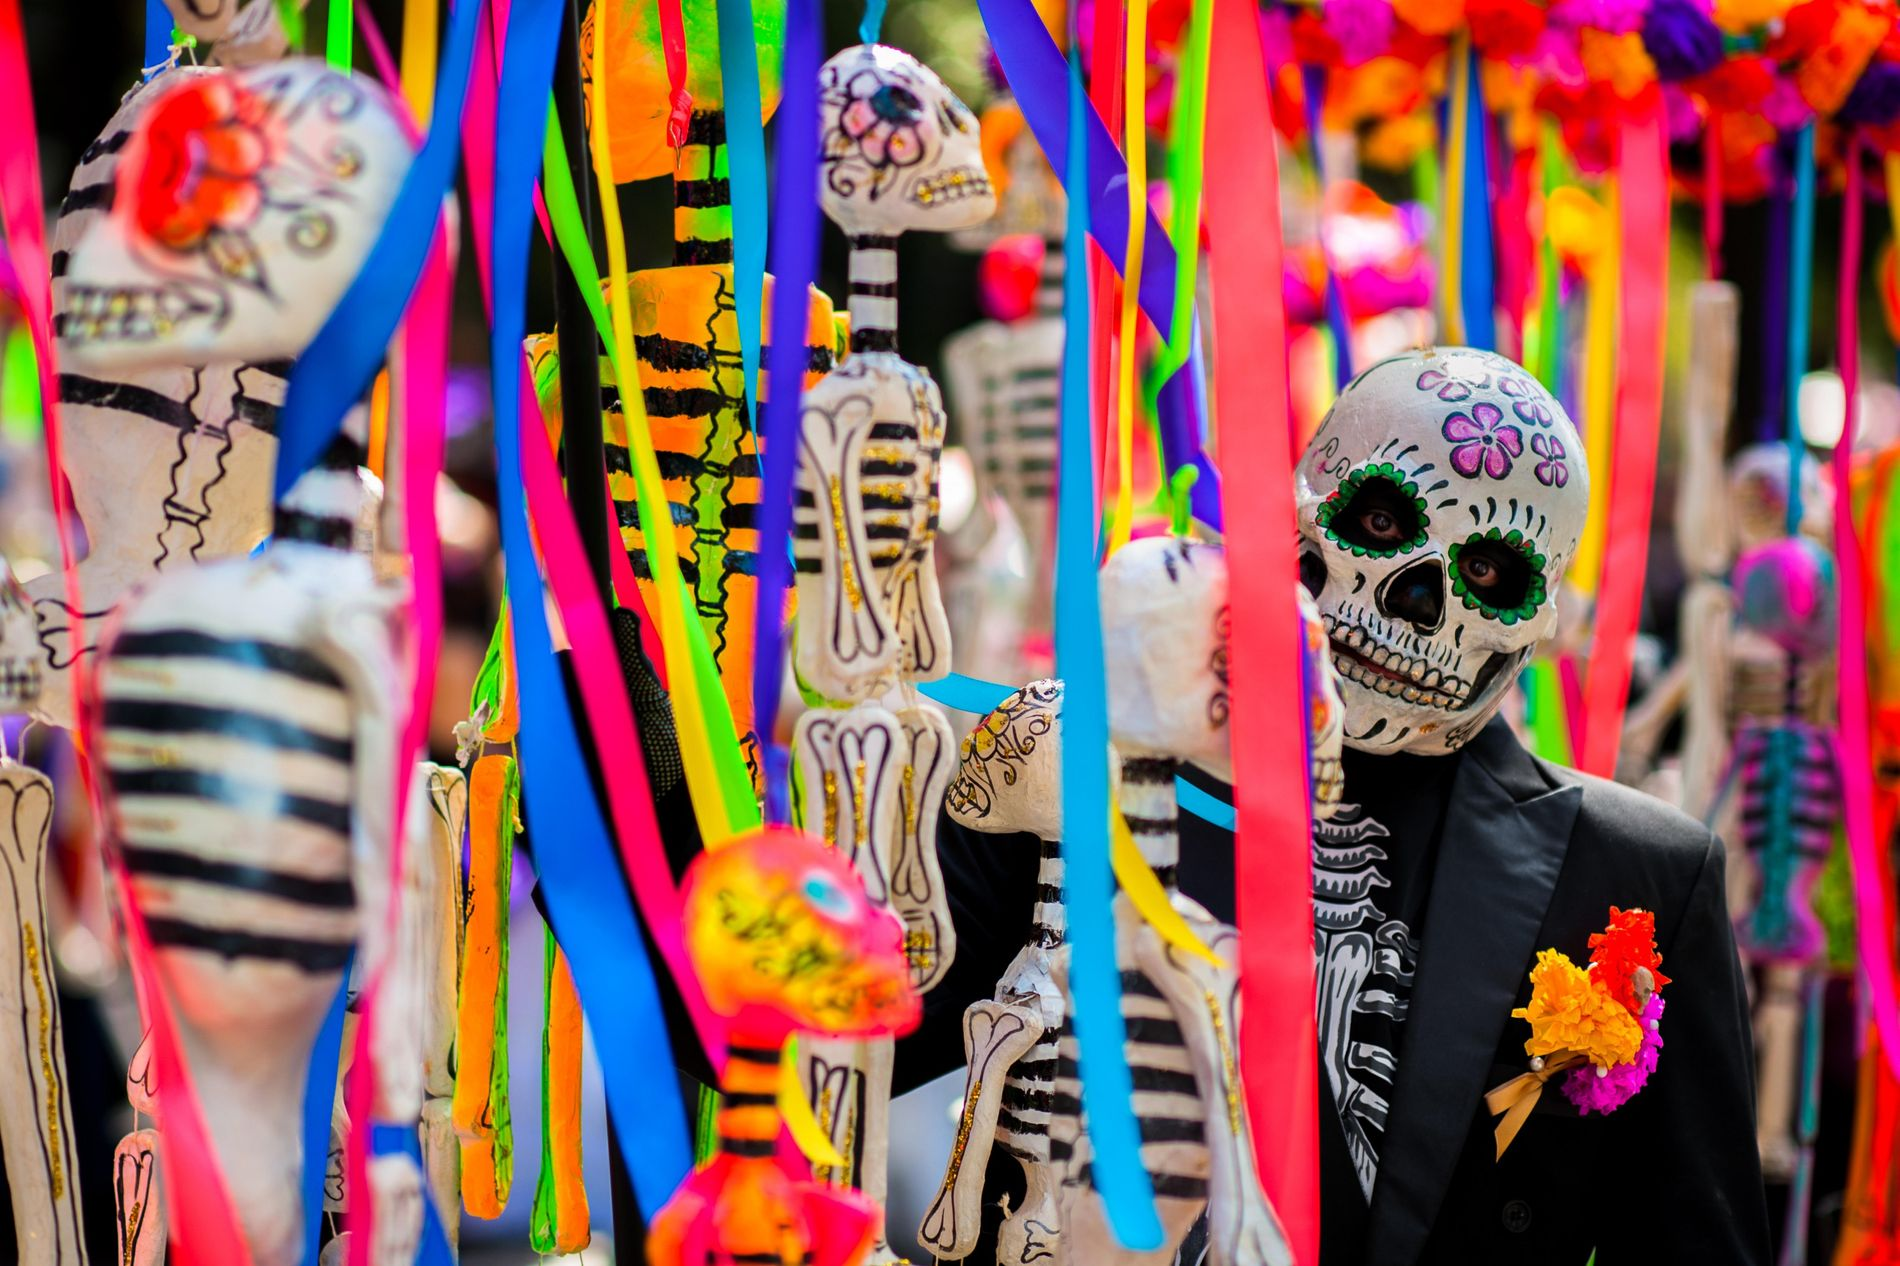 A reveller celebrates Day of the Dead dressed as a calaca, or skeleton.